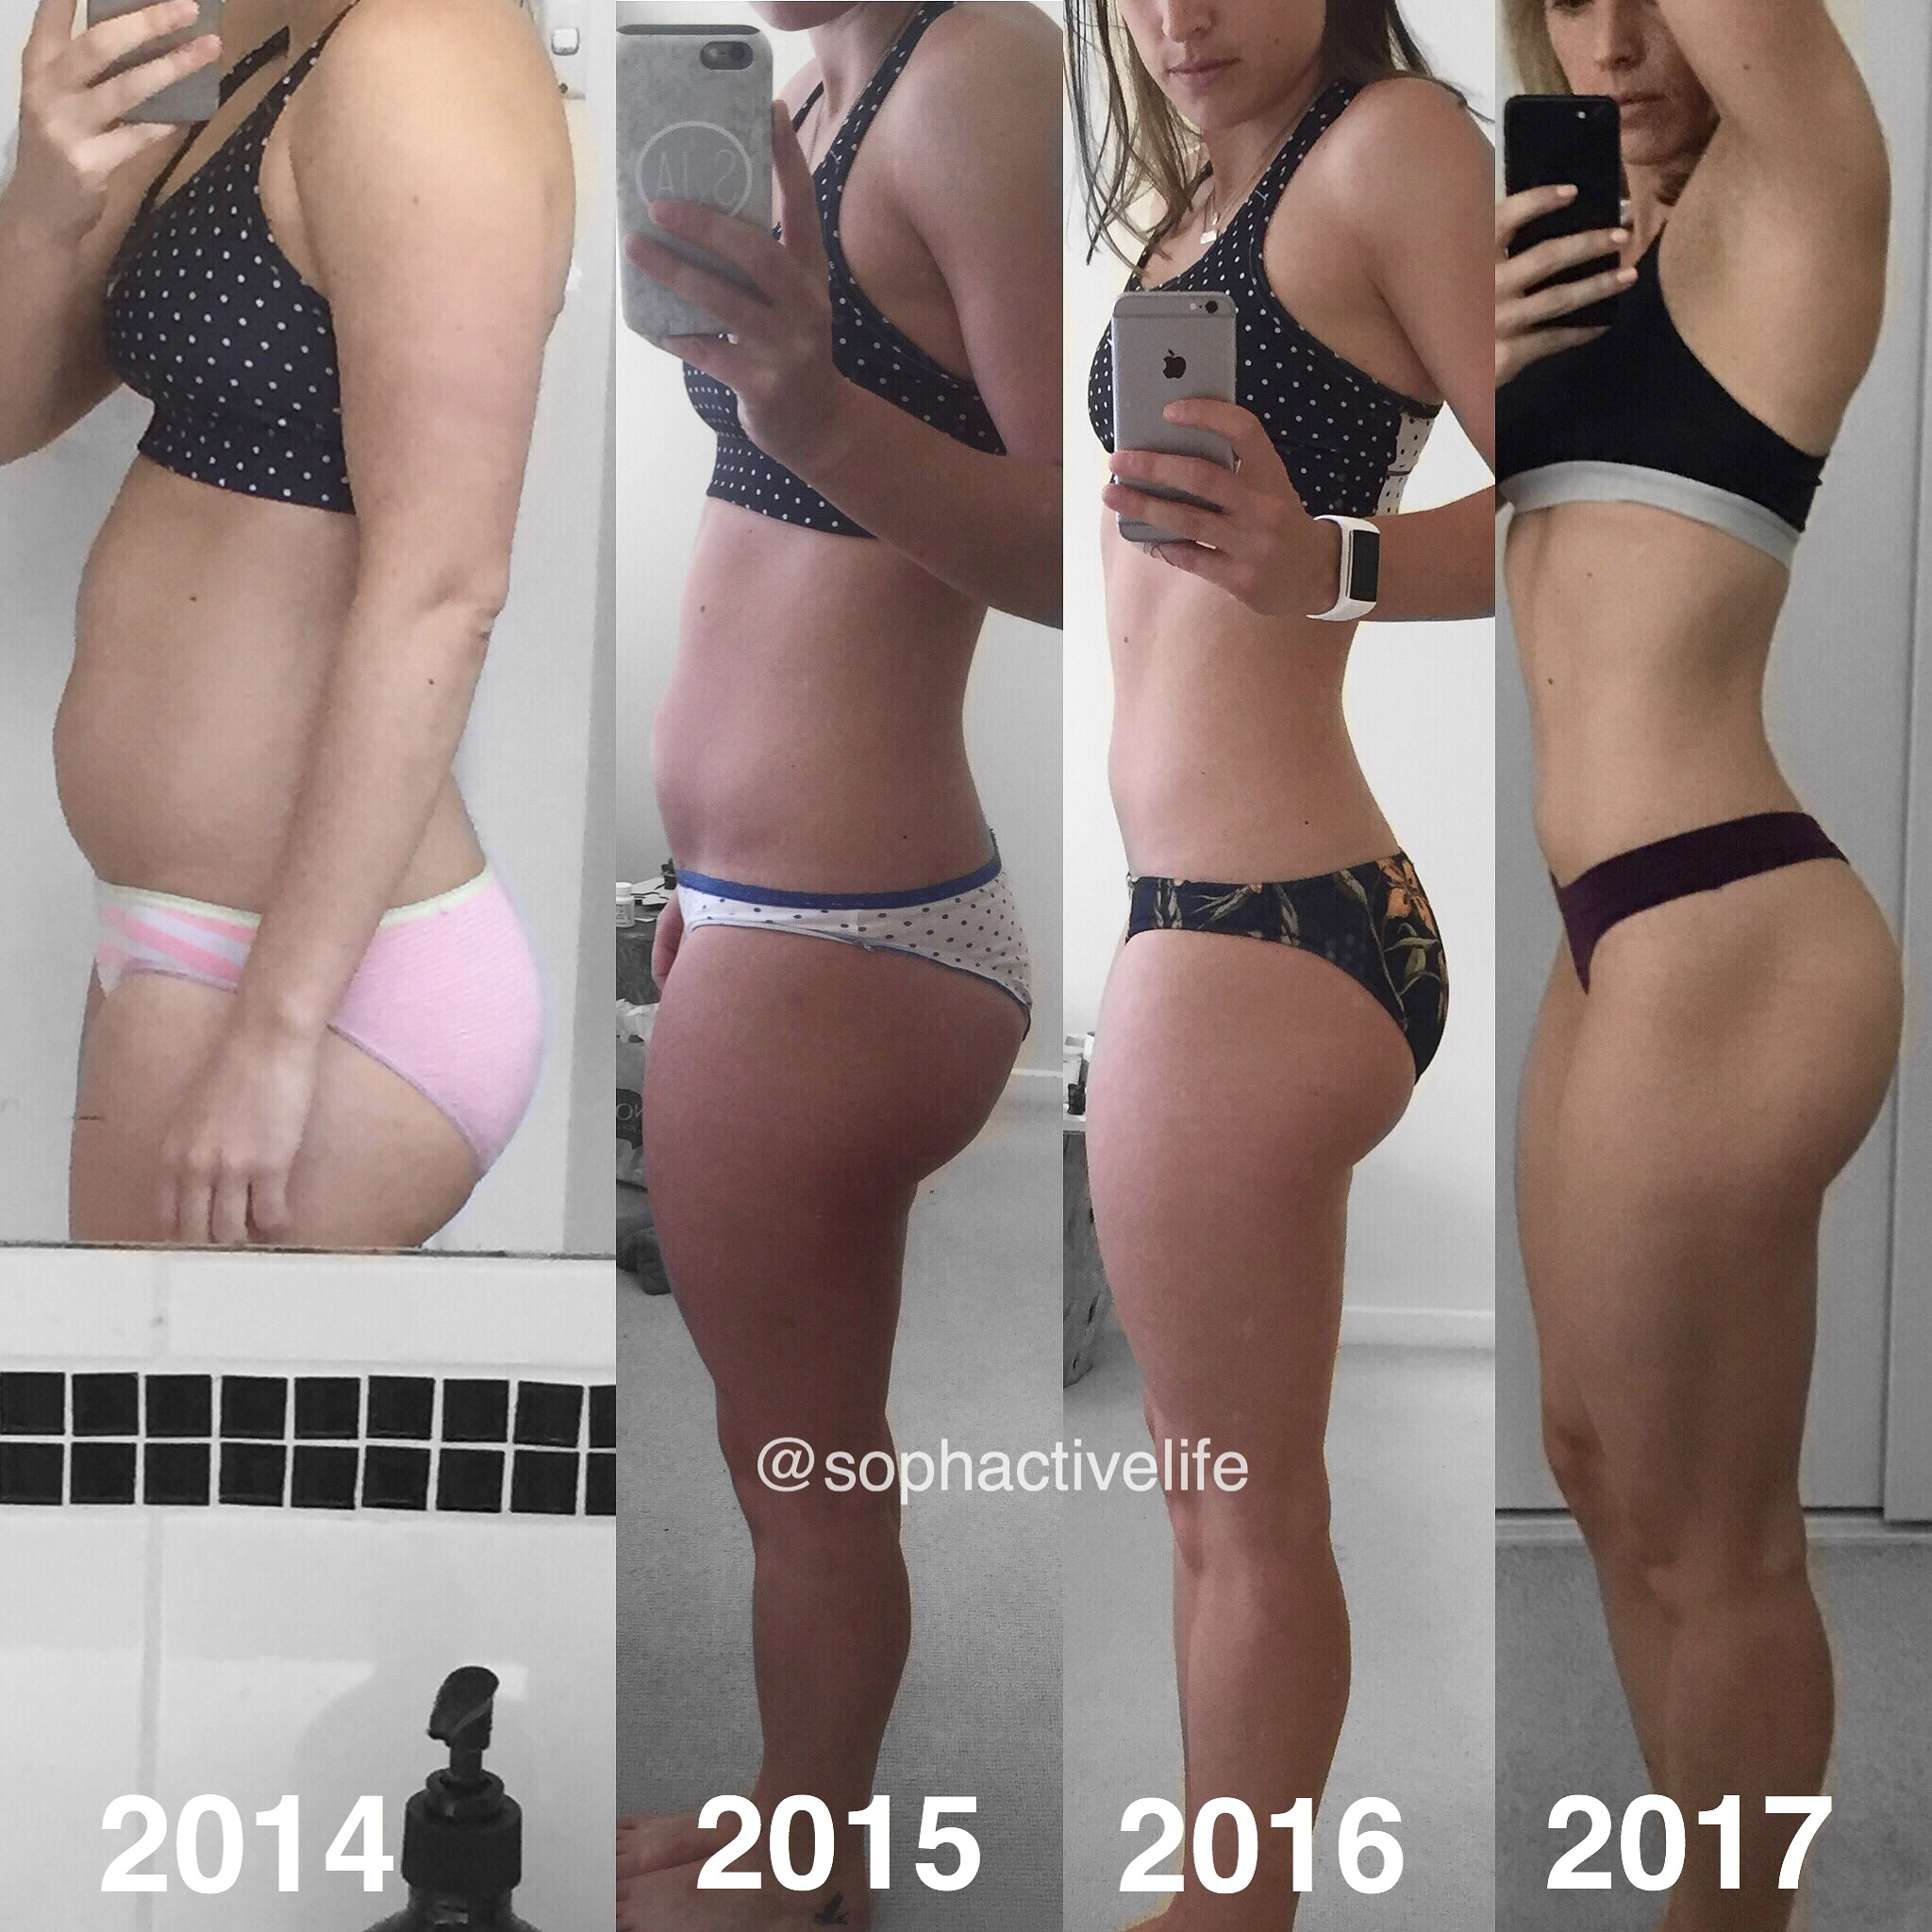 Transformations take time! My progress from 2014 to 2017